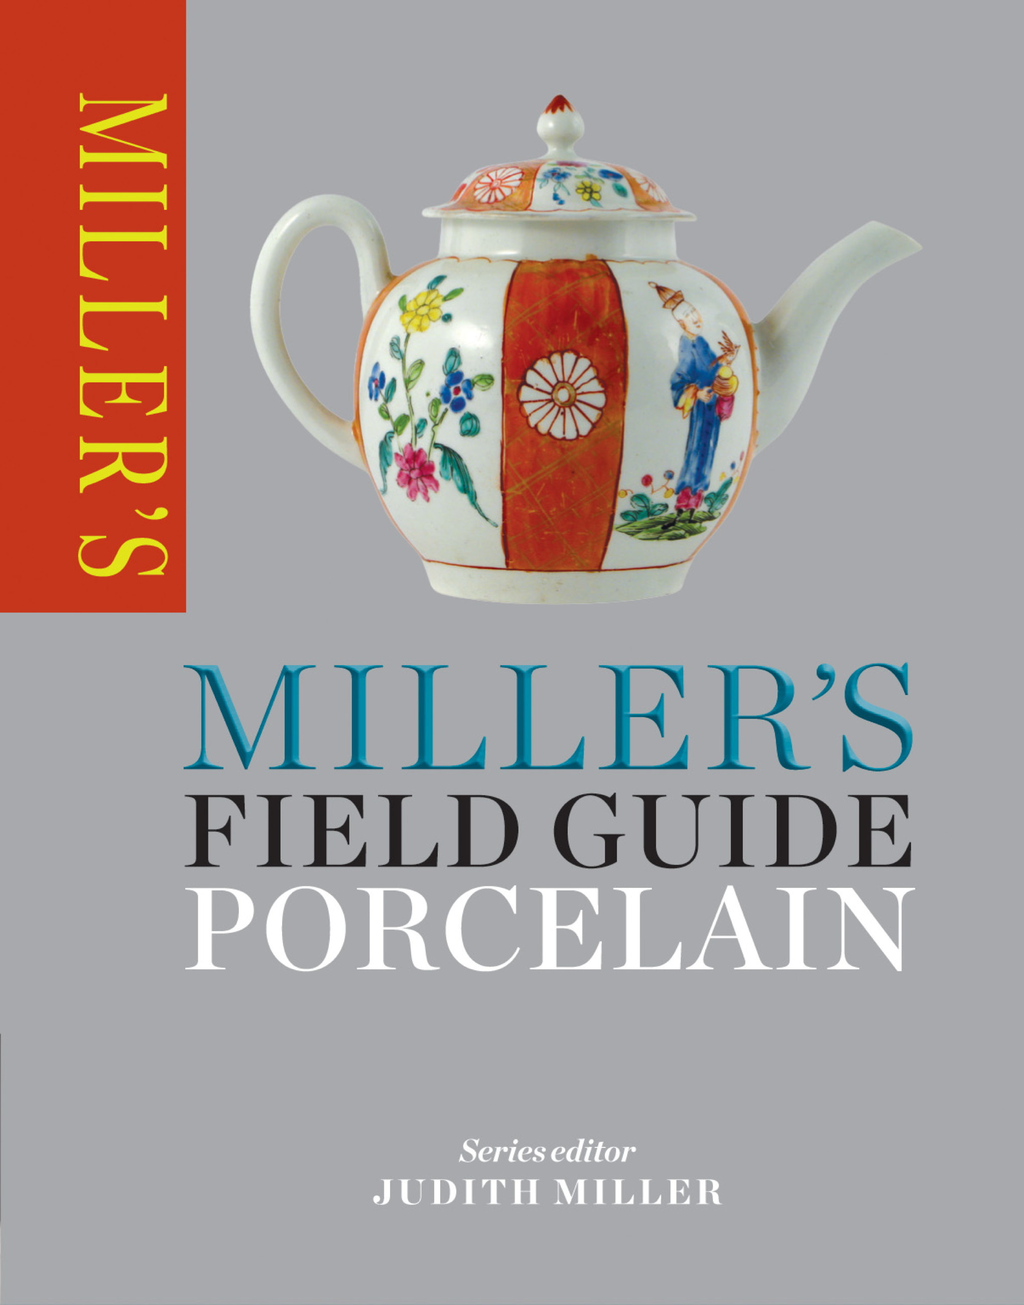 Miller's Field Guide: Porcelain